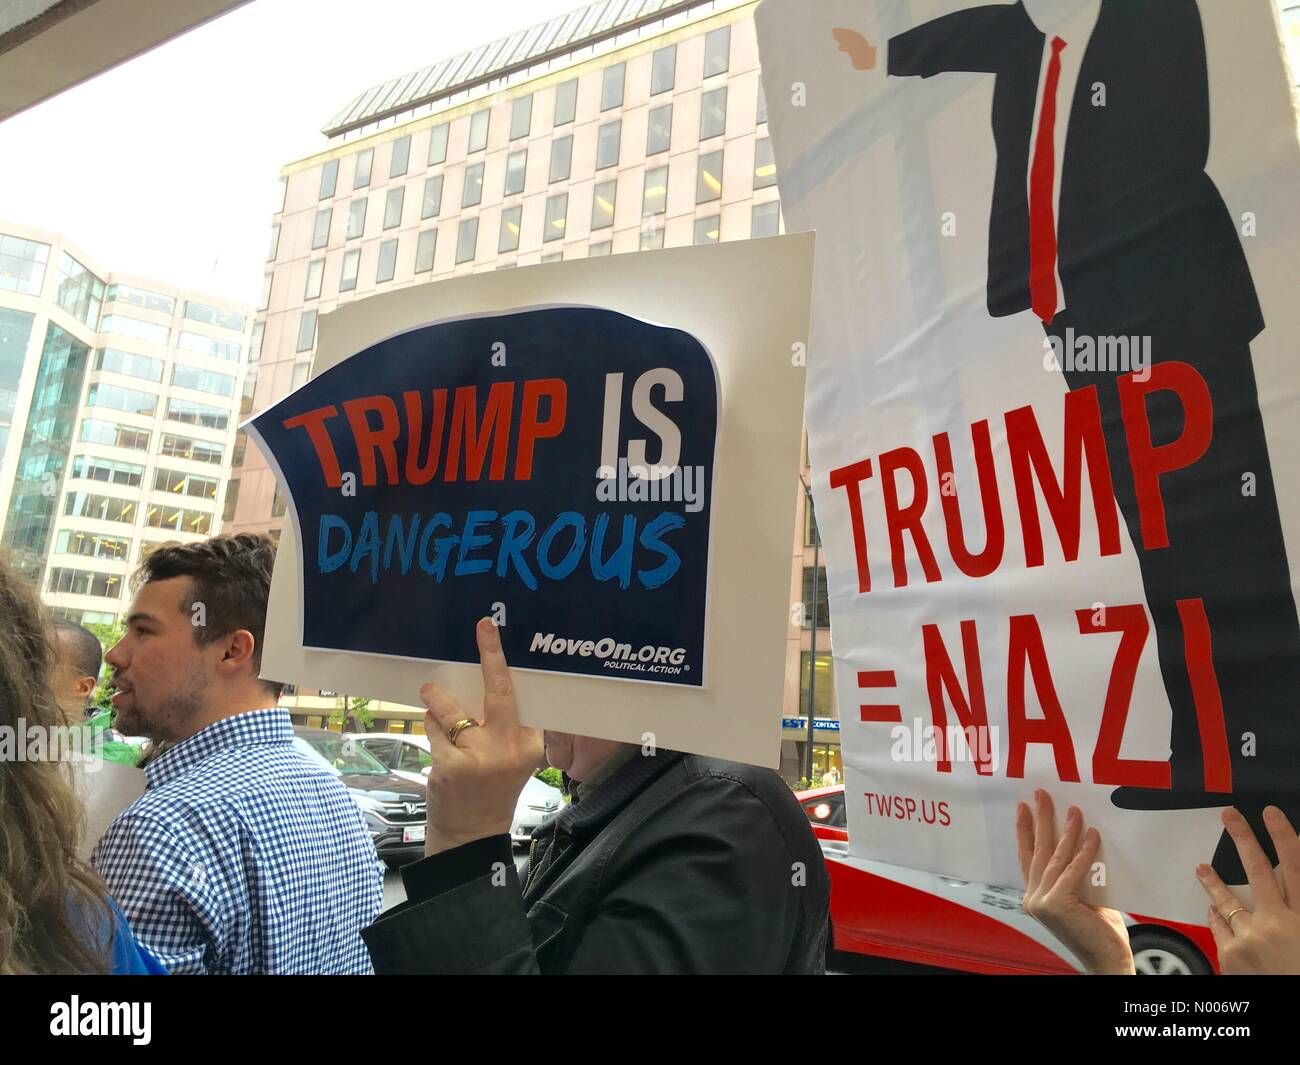 Anti-Trump Rally outside of the Mayflower Hotel in Washington, DC where Donald Trump is about to speak on 27th April, - Stock Image